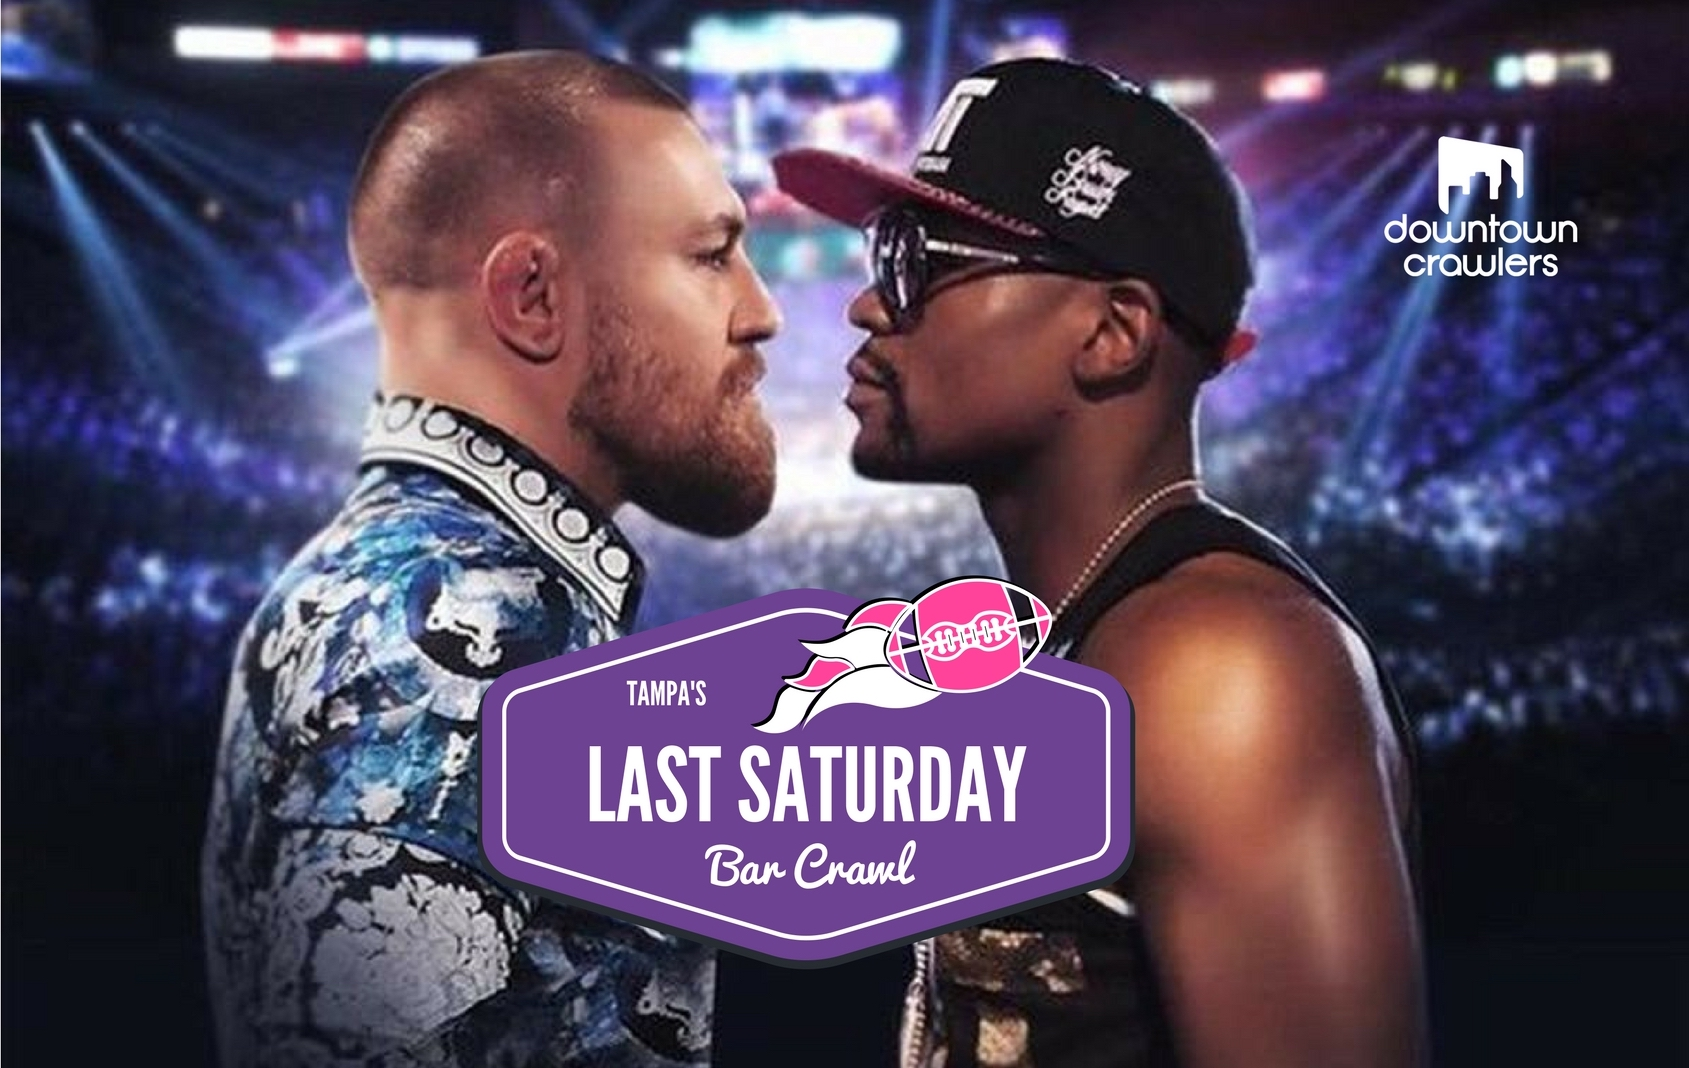 Mayweather McGregor VIP watch party Downtown Crawlers